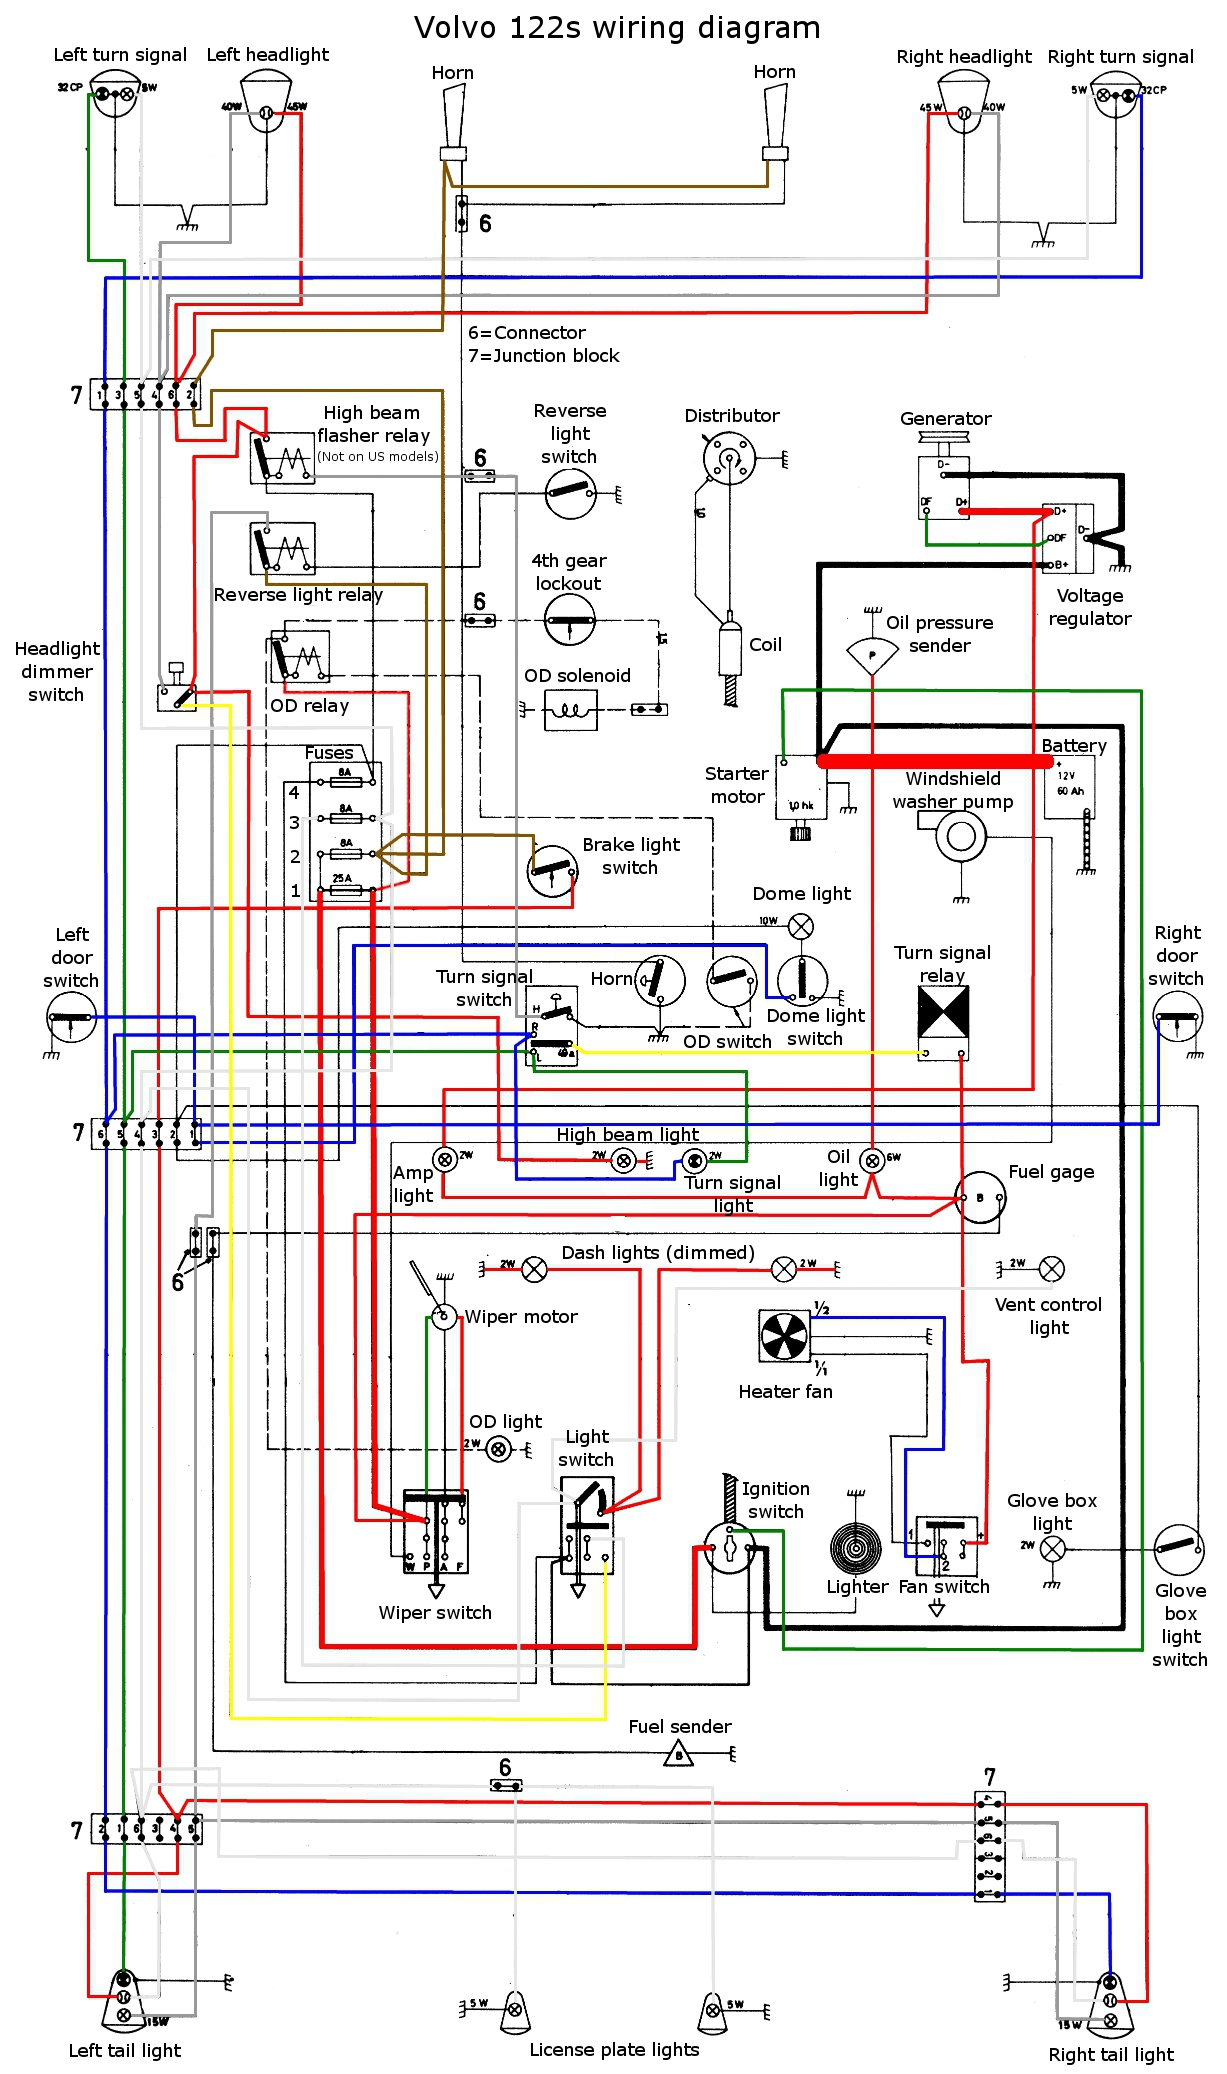 122 wiring diagram color?resize\\\\\\\\\\\\\\\=1227%2C2074 volvo wiring diagrams s60 gandul 45 77 79 119 pc9-401 wiring diagram at n-0.co